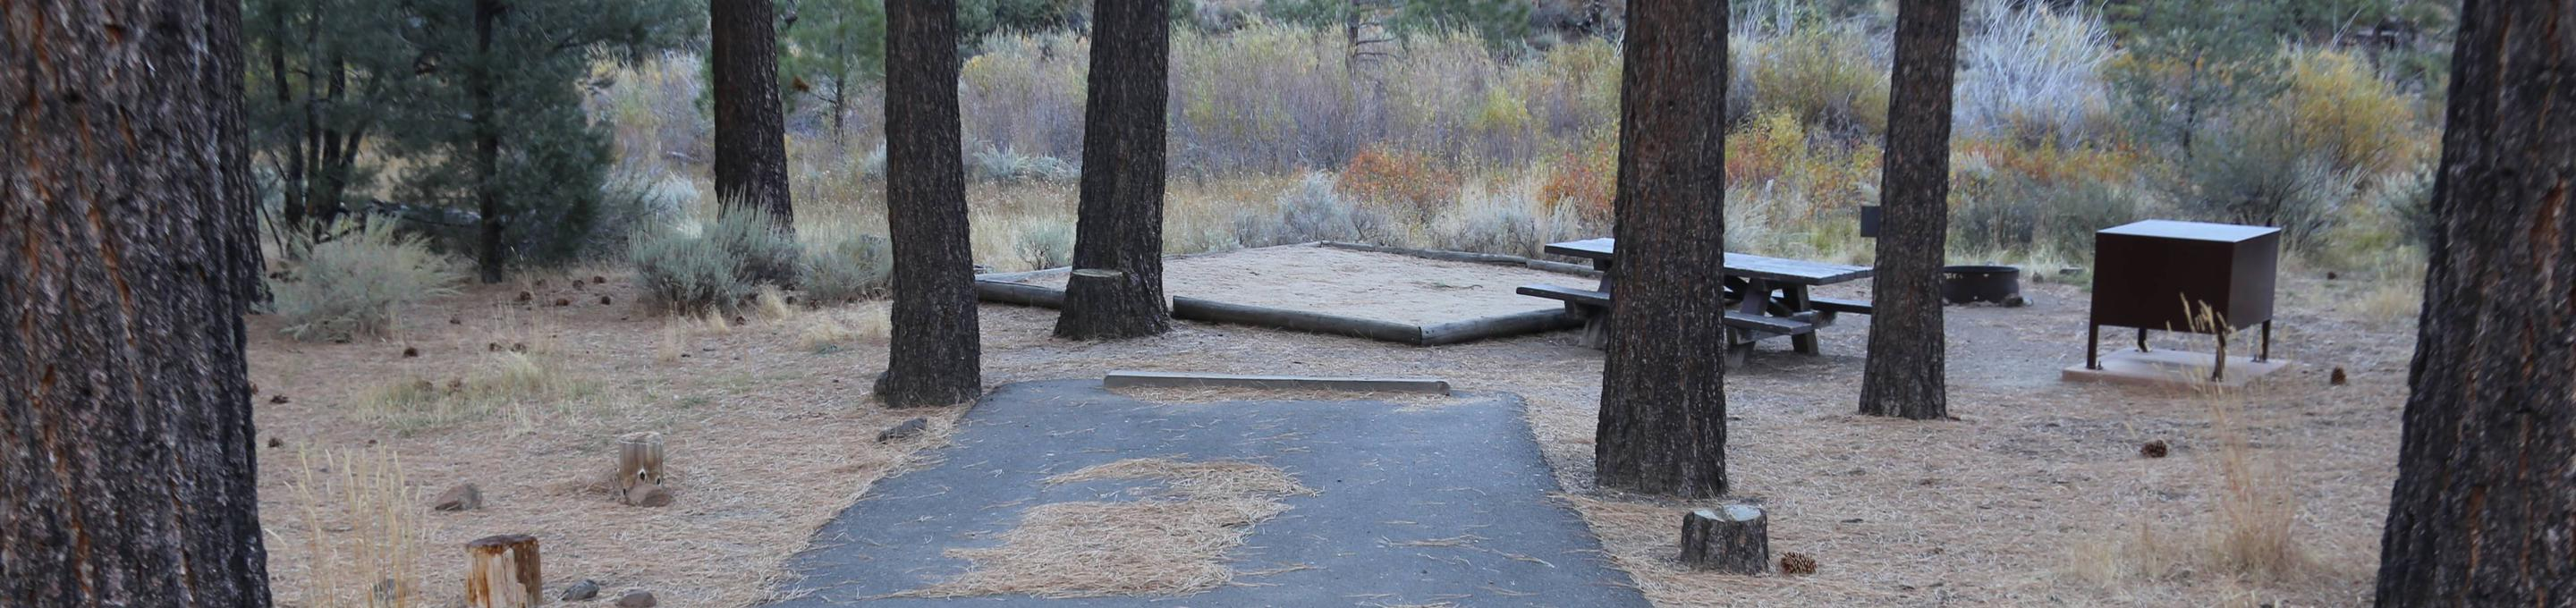 Indian Creek Campground Site #19